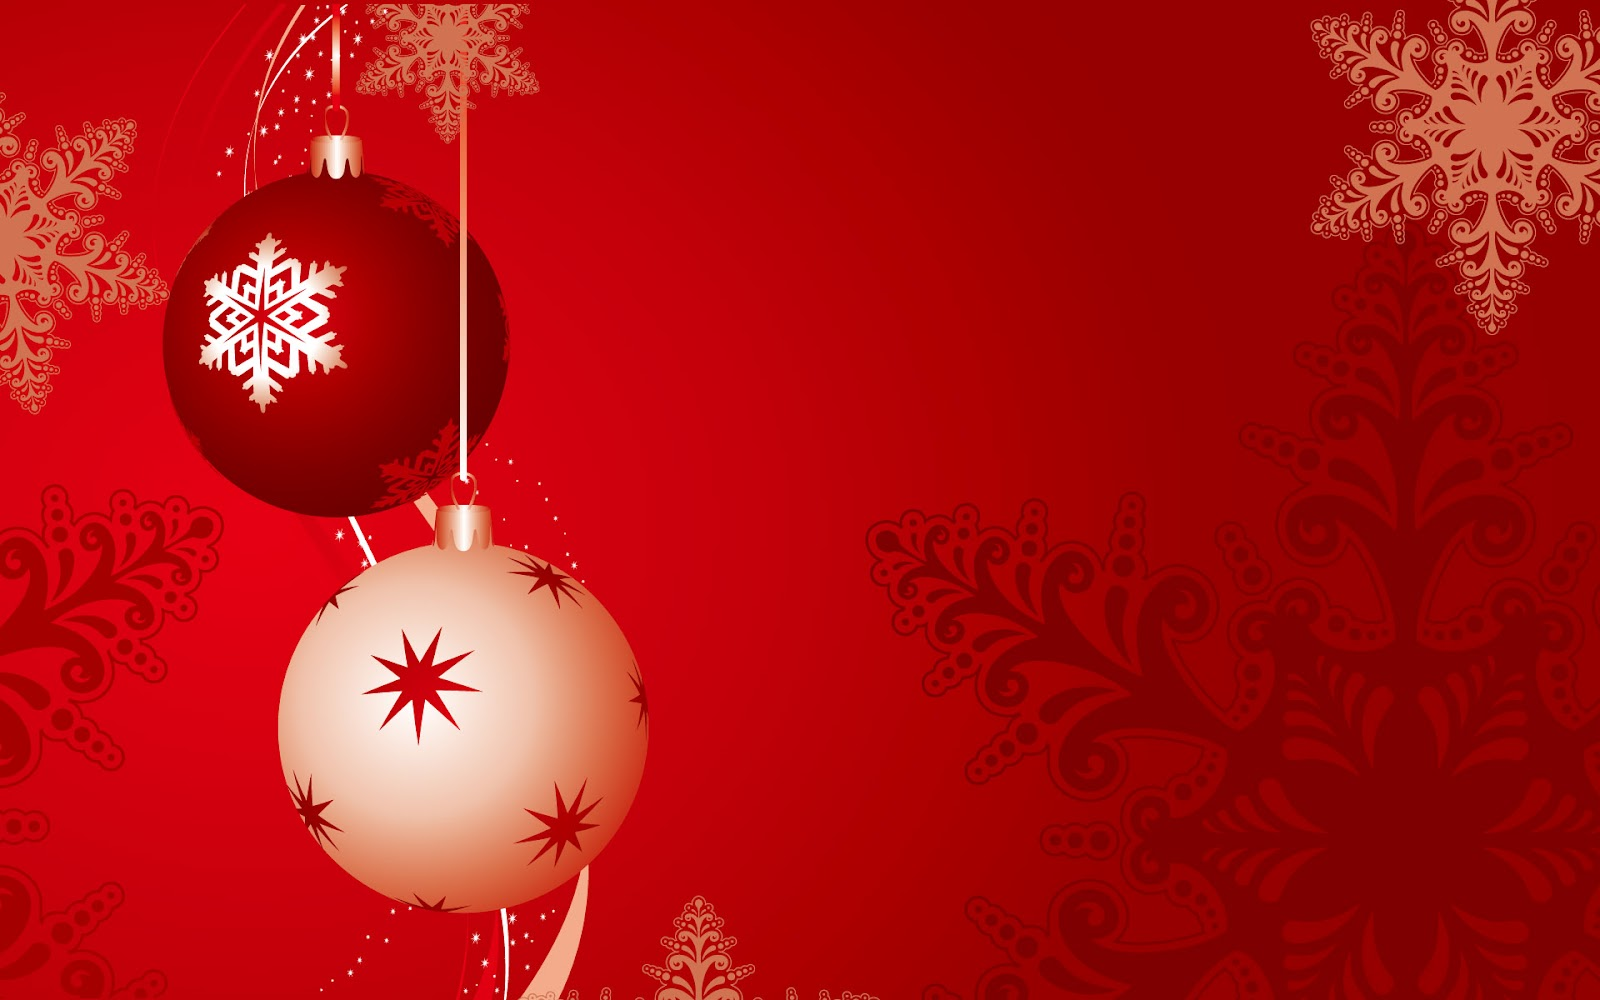 Simple Wallpaper High Quality Christmas - Merry-Christmas-Wallpaper-High-Quality-New-2015  Photograph_75184.jpg